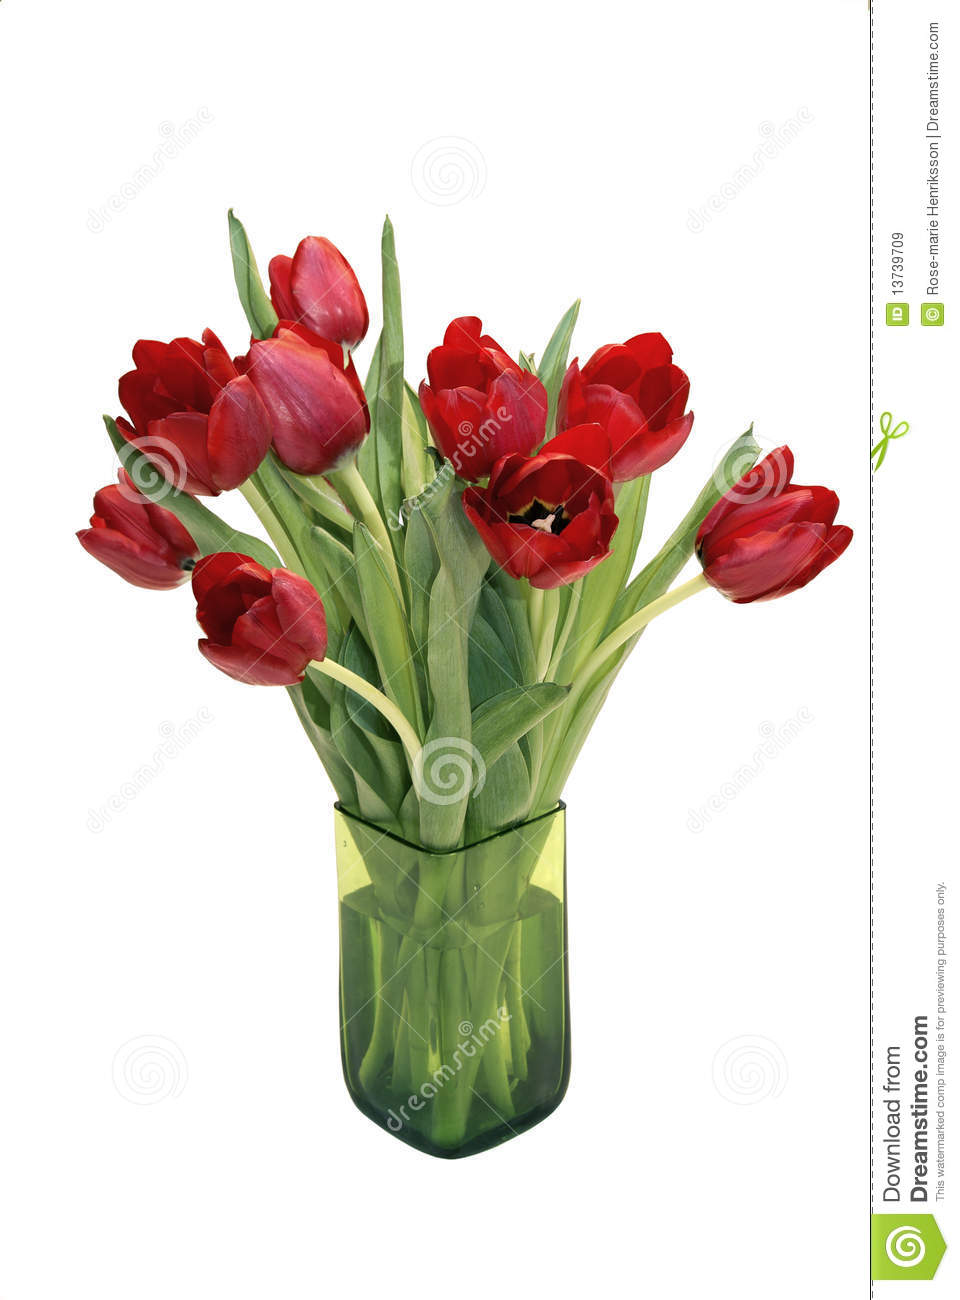 rote tulpen in einem vase lizenzfreie stockbilder bild 13739709. Black Bedroom Furniture Sets. Home Design Ideas